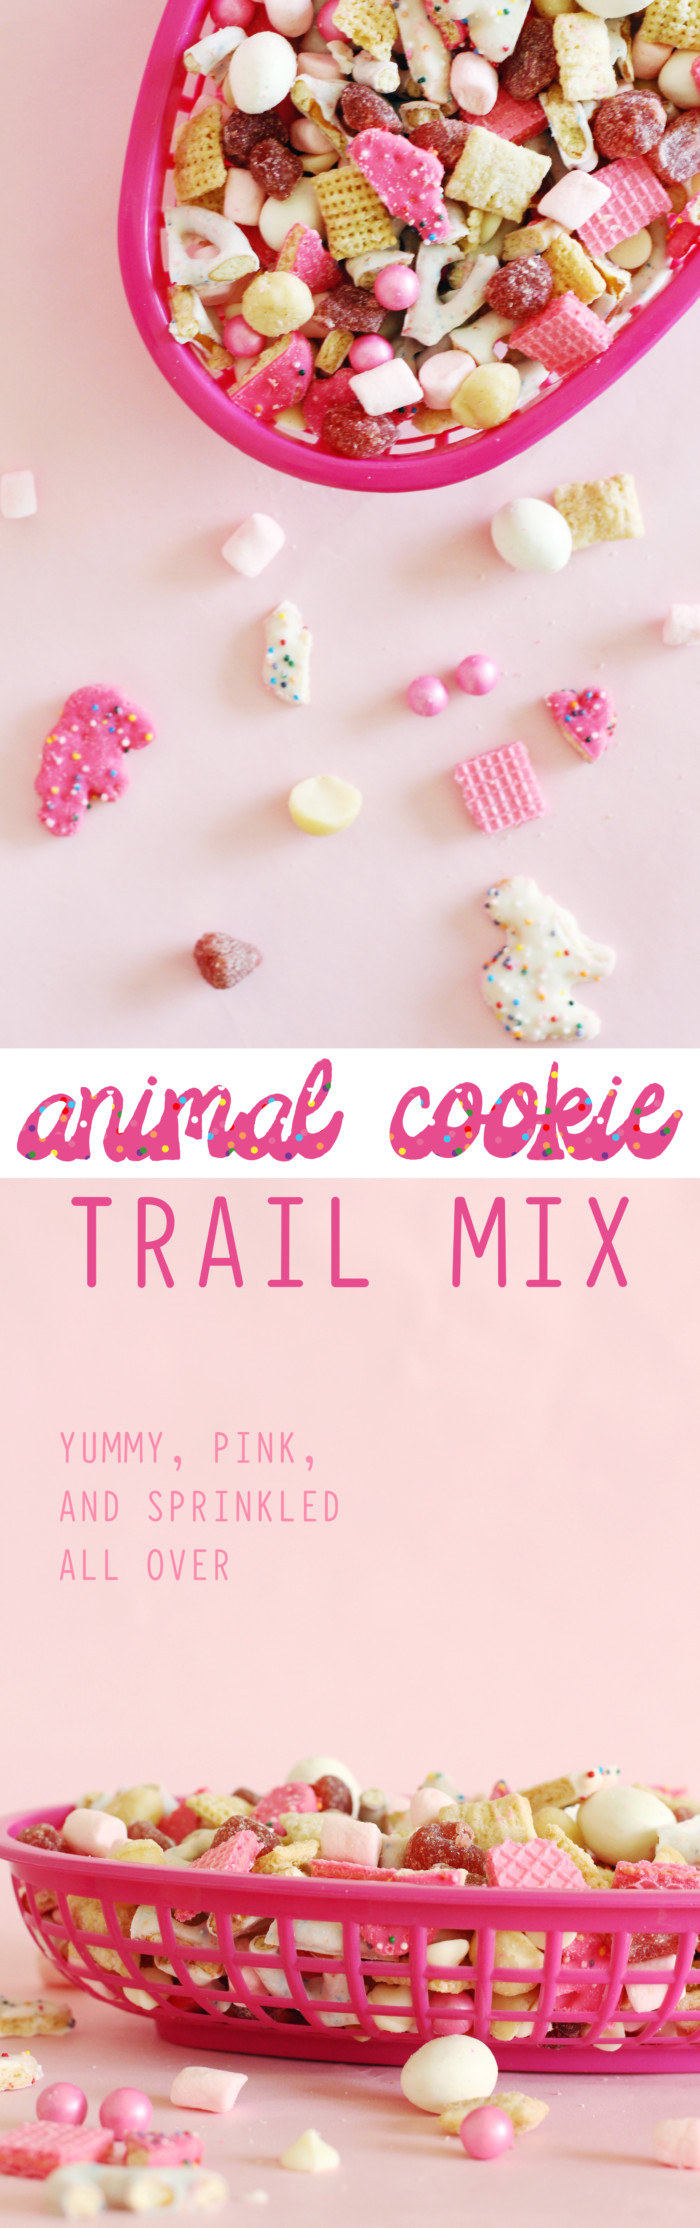 Animal cookie Trail Mix is the perfect snack mix to take along anywhere, especially with littles in tow! recipe via ajoyfulriot.com